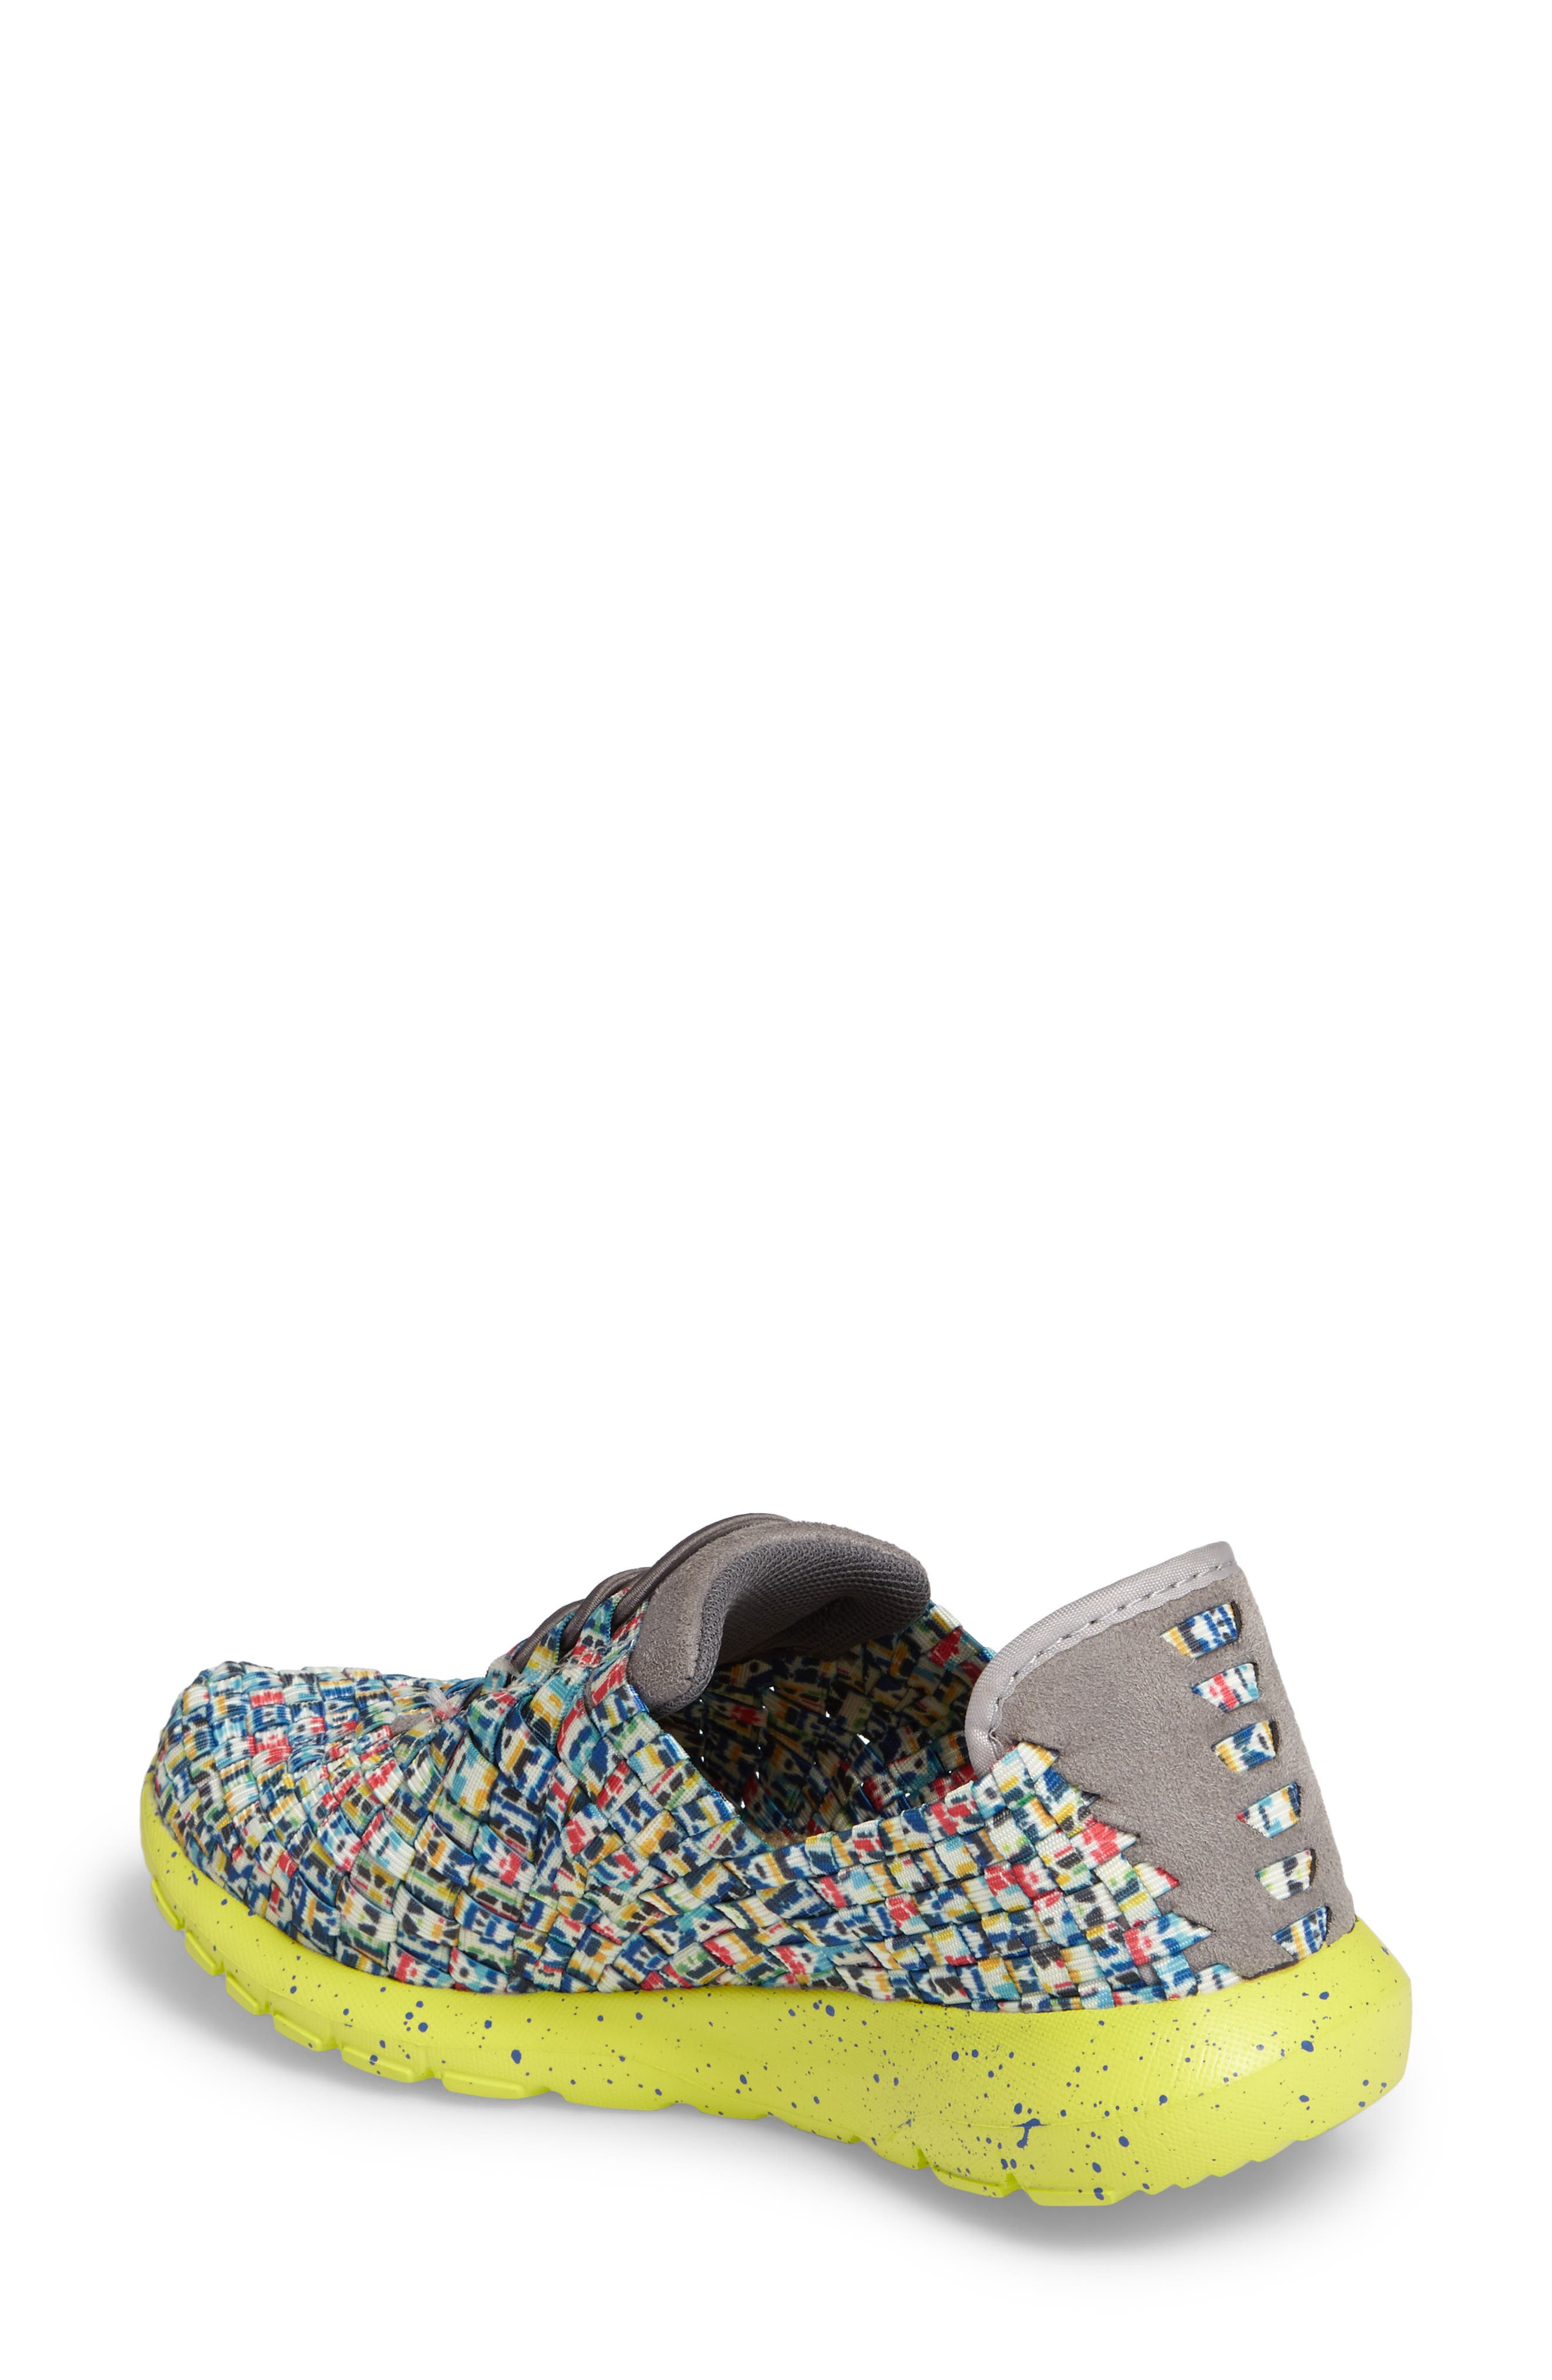 Runners Victoria Sneaker,                             Alternate thumbnail 2, color,                             Pixel Fabric